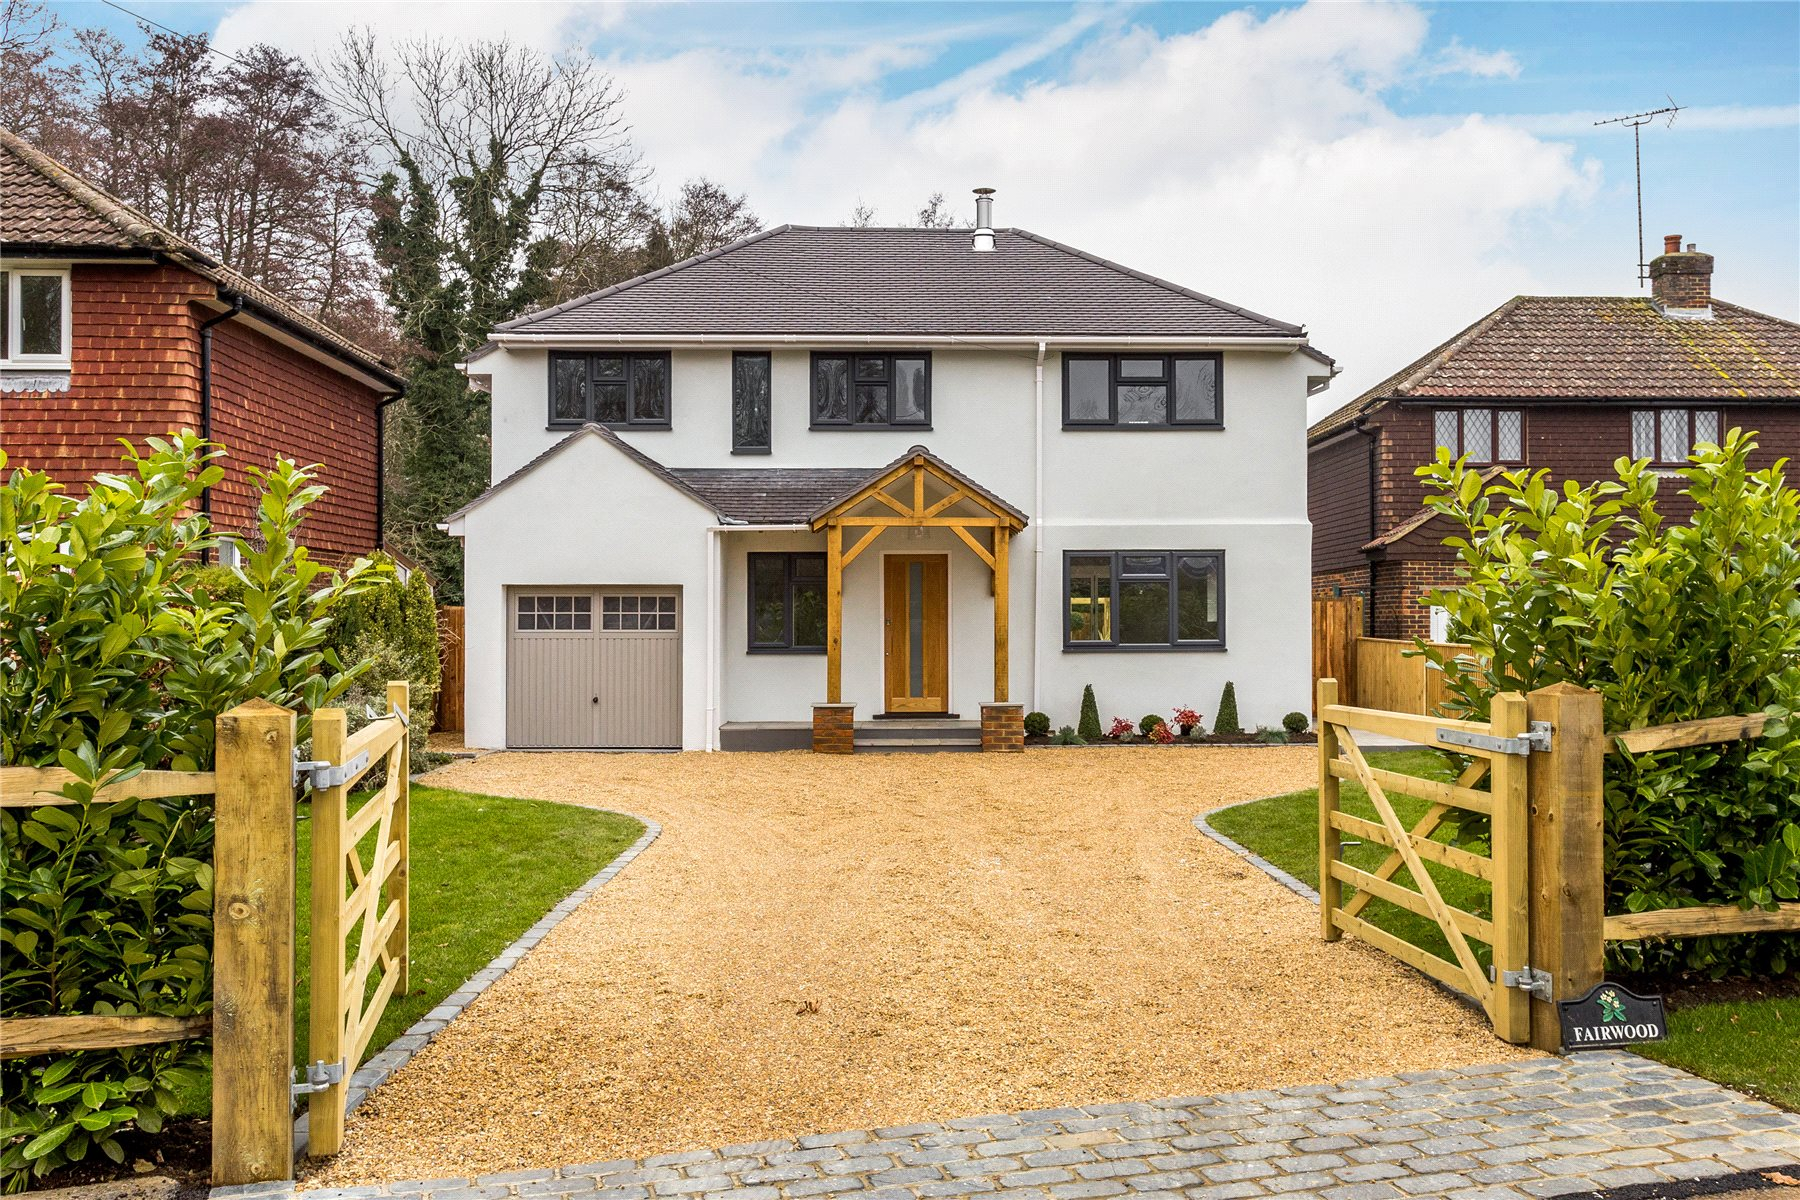 4 Bedrooms Detached House for sale in Guildford Road, Pirbright, Woking, Surrey, GU24